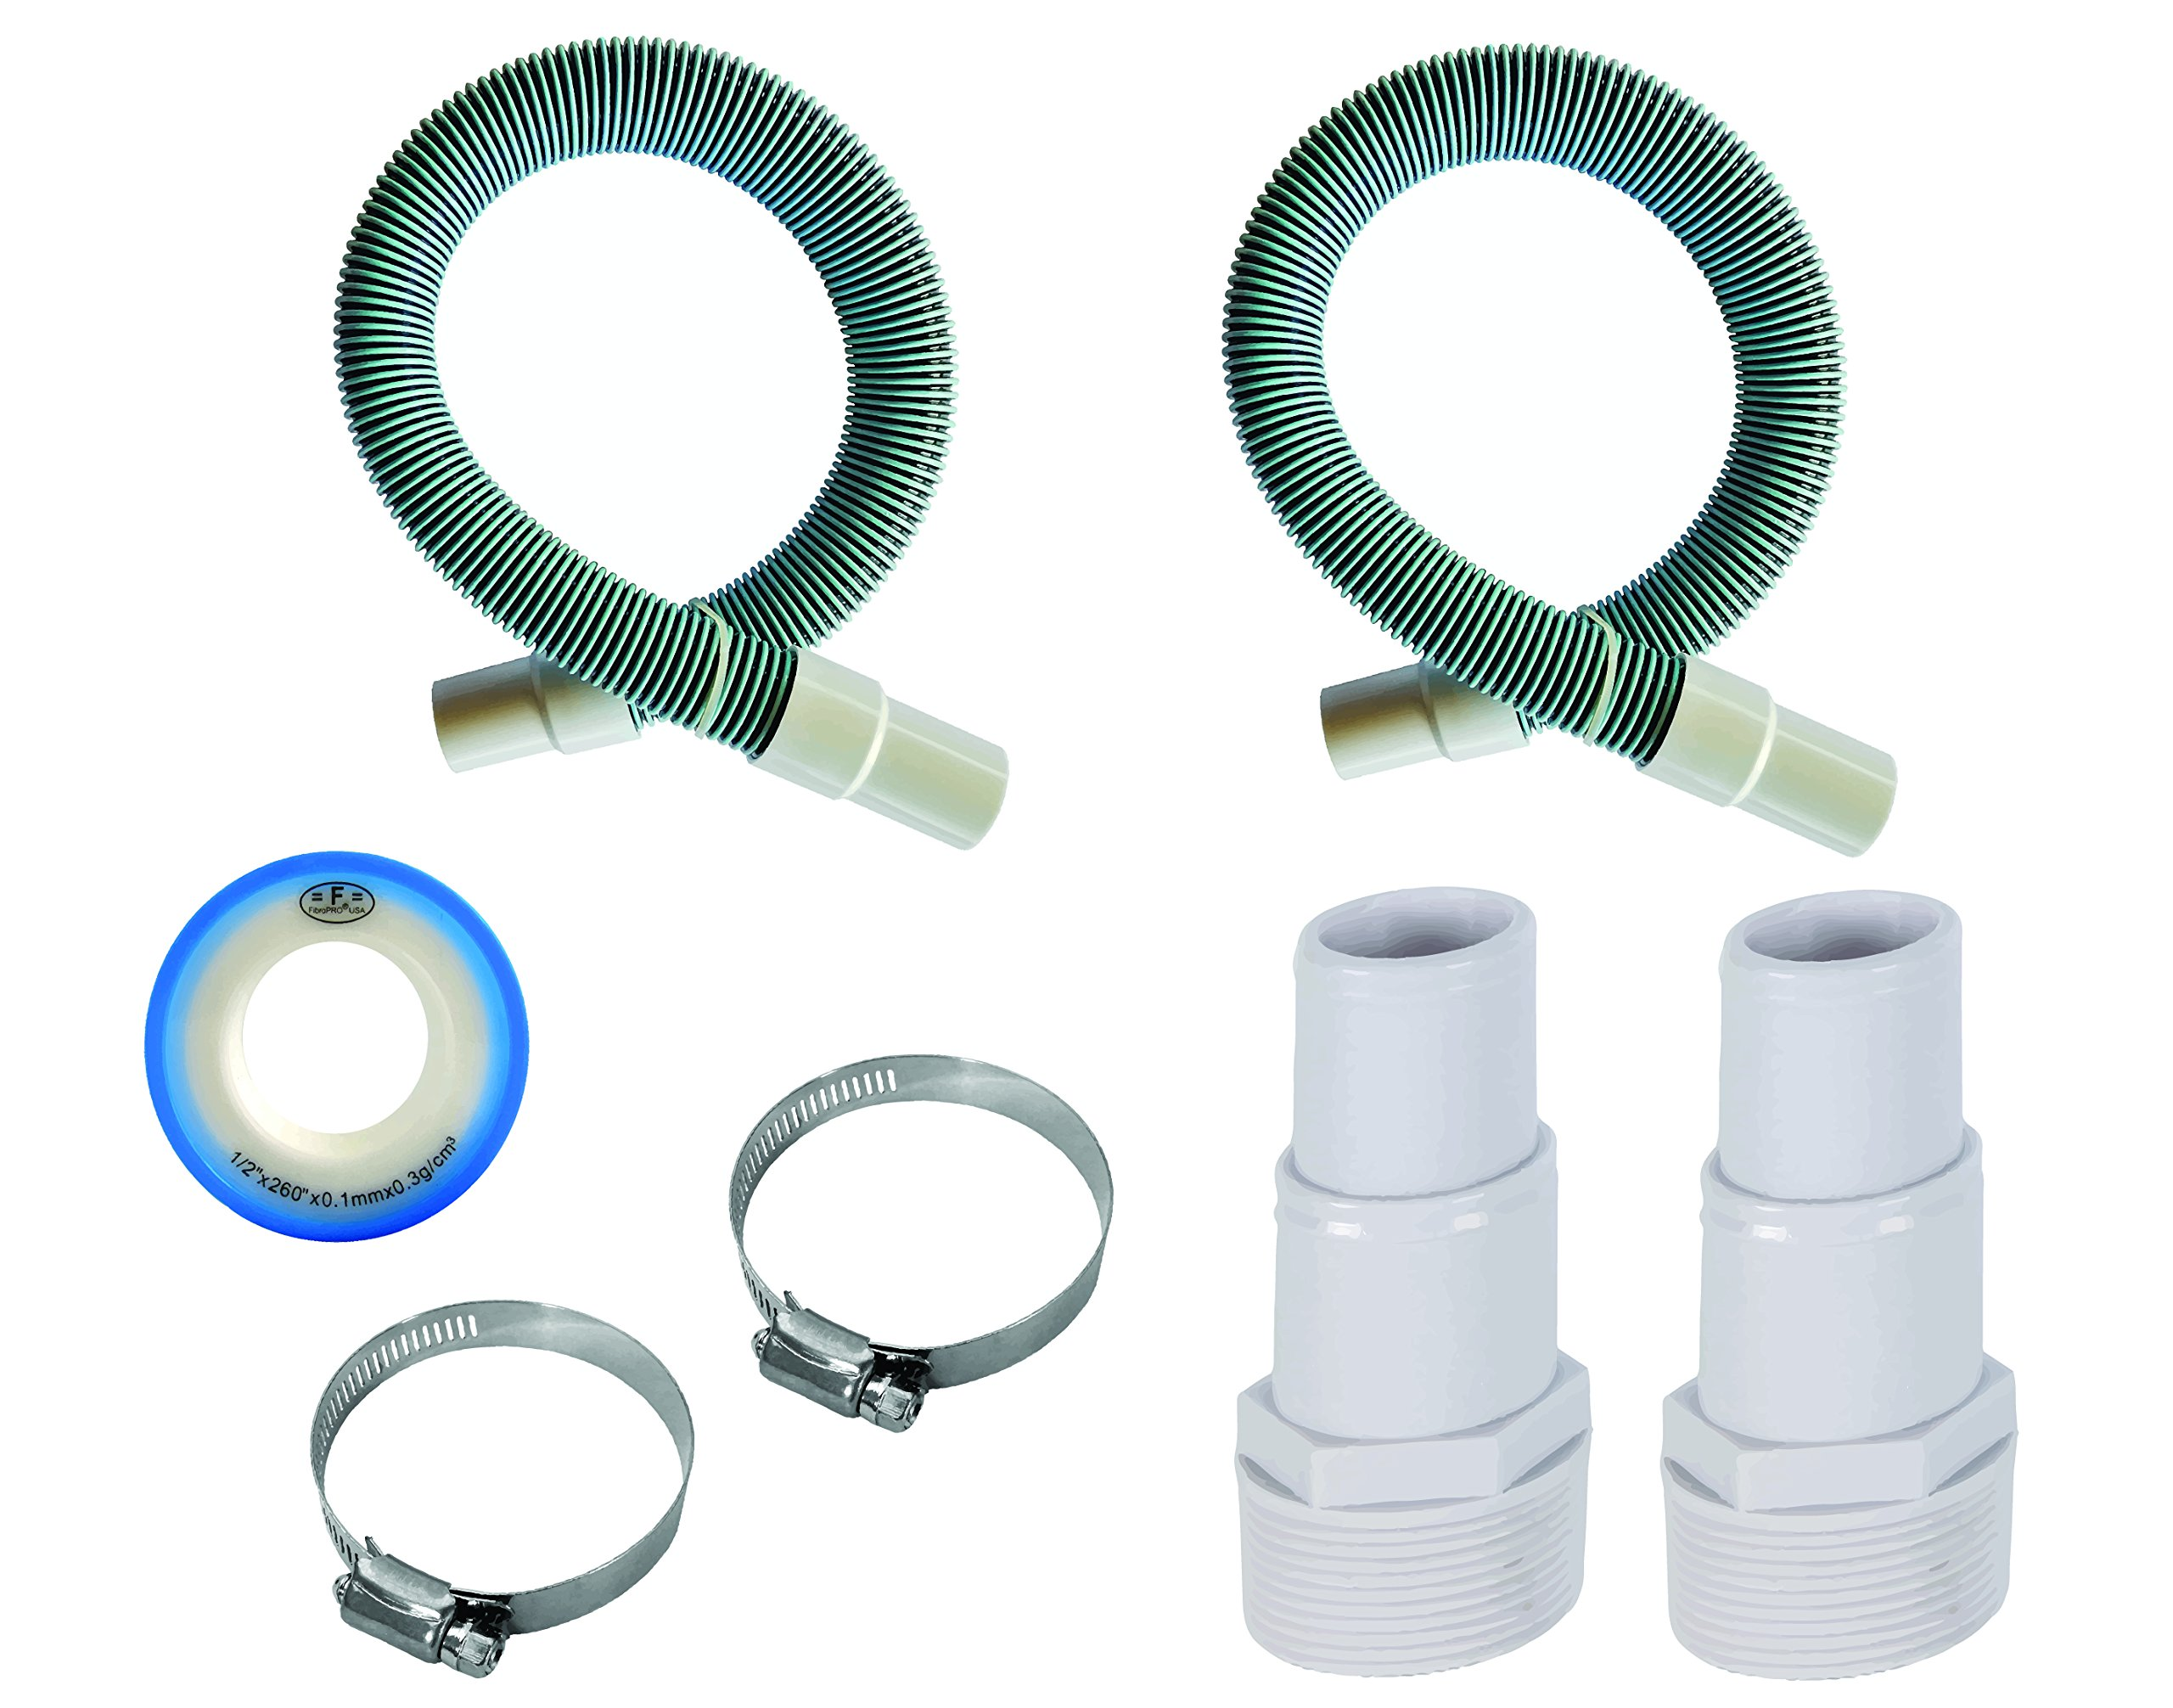 Fibropool Professional 1 1/2'' Swimming Pool Filter Hose Replacement Kit (9 Feet, 2 Pack) by Fibropool